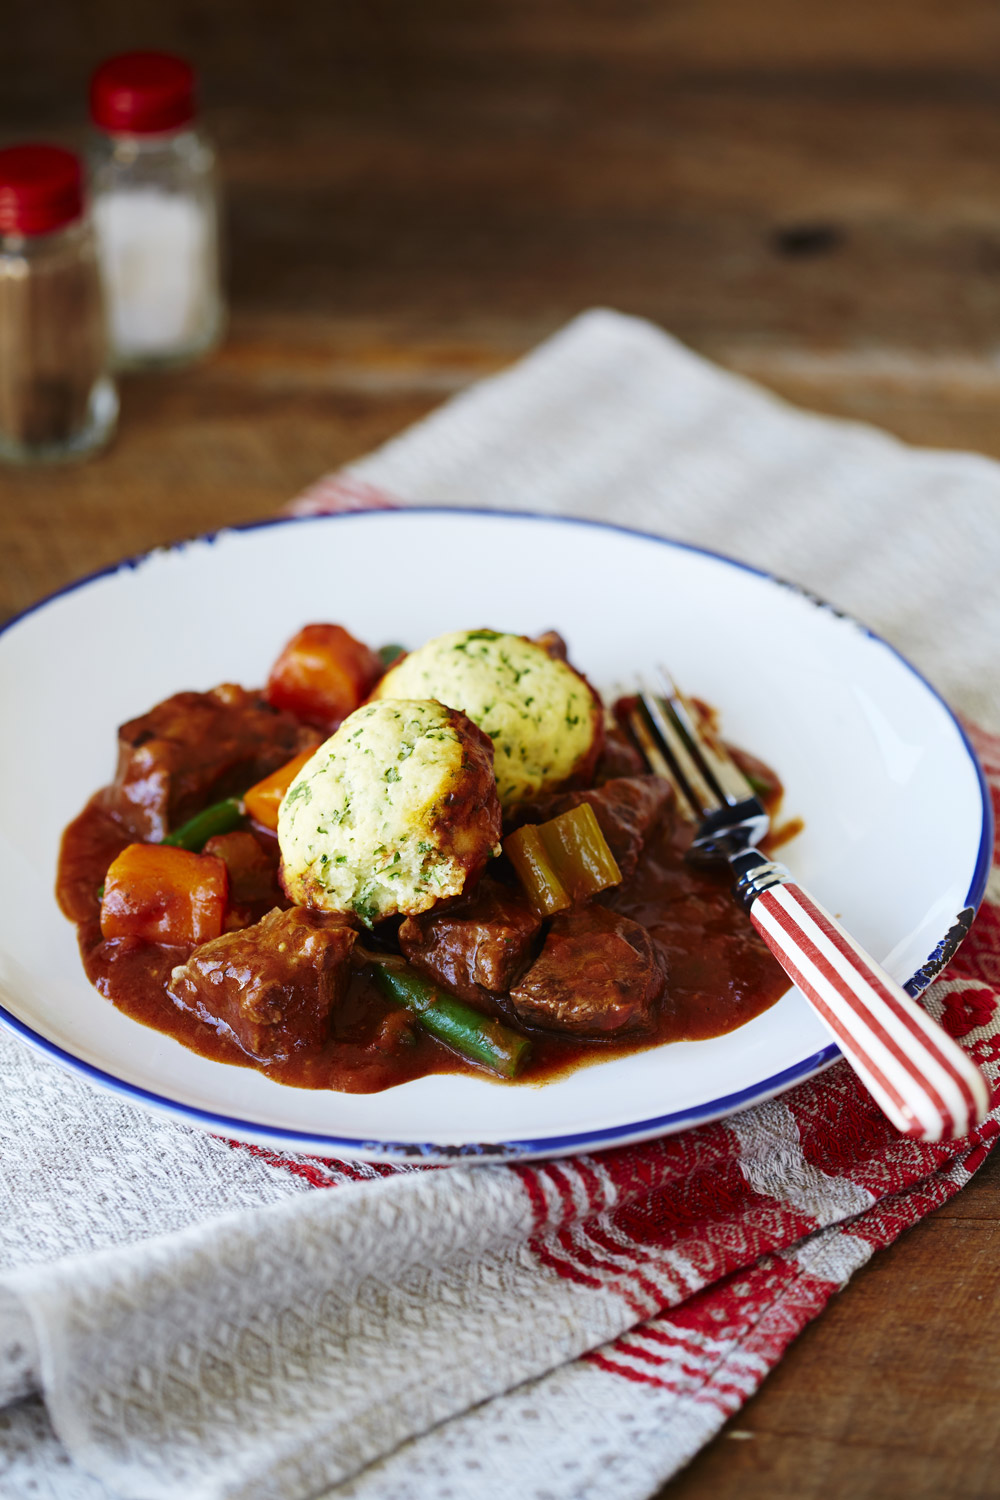 Beef casserole with herb dumplings - auzure Canola Oil